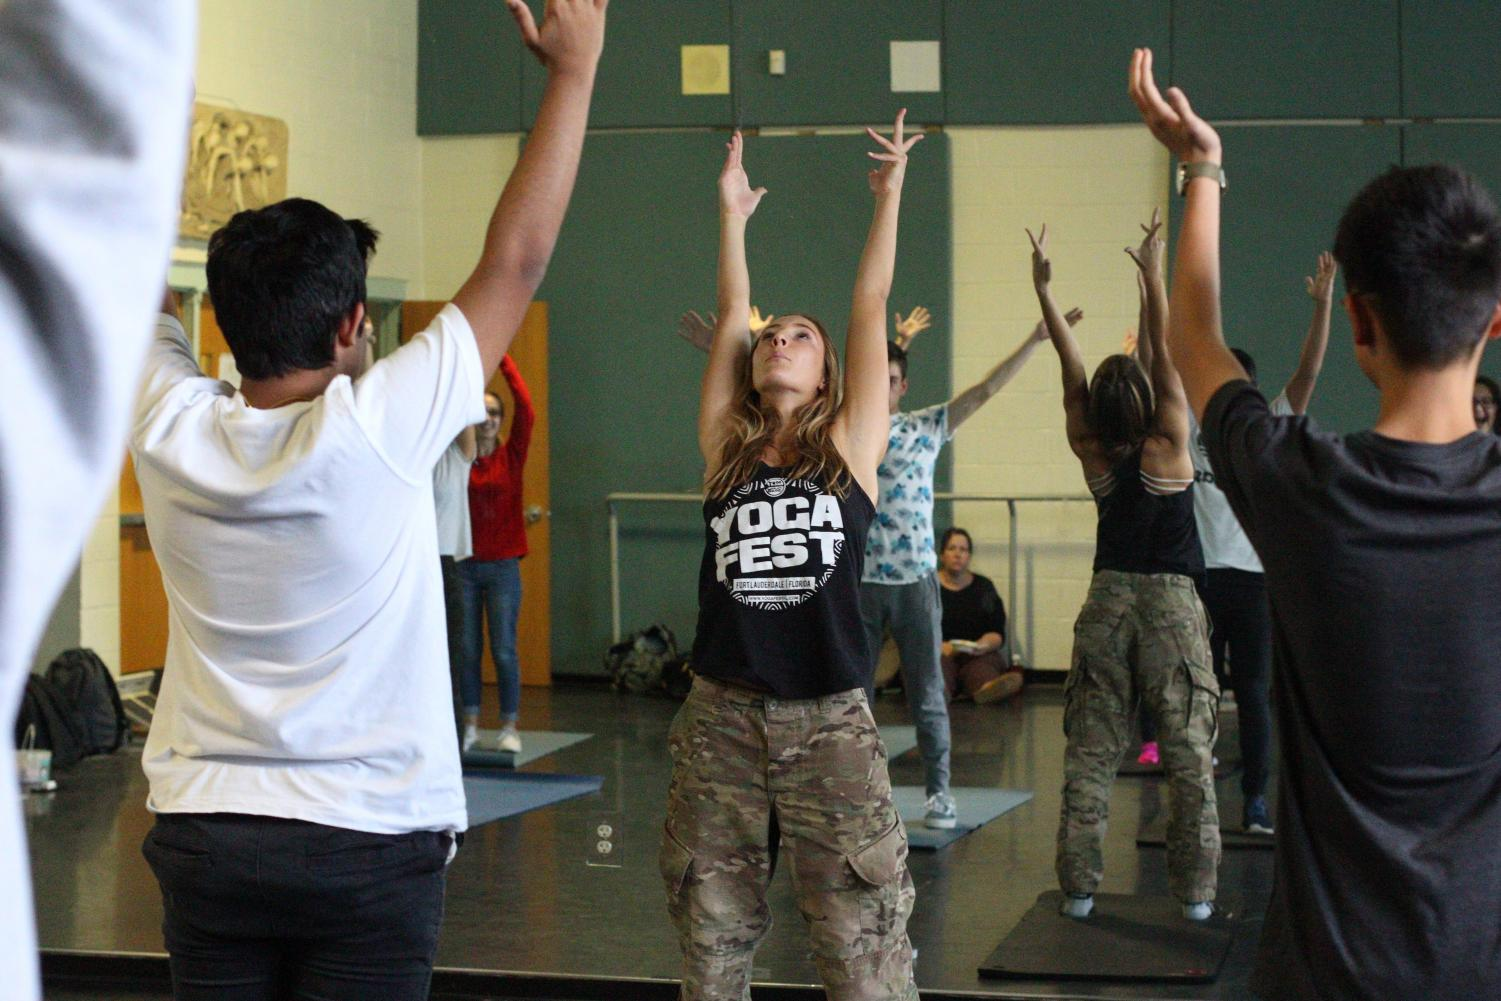 Visual senior Paige Duffack leads students in yoga as they learn ways to live life with a healthy mentality and physicality.